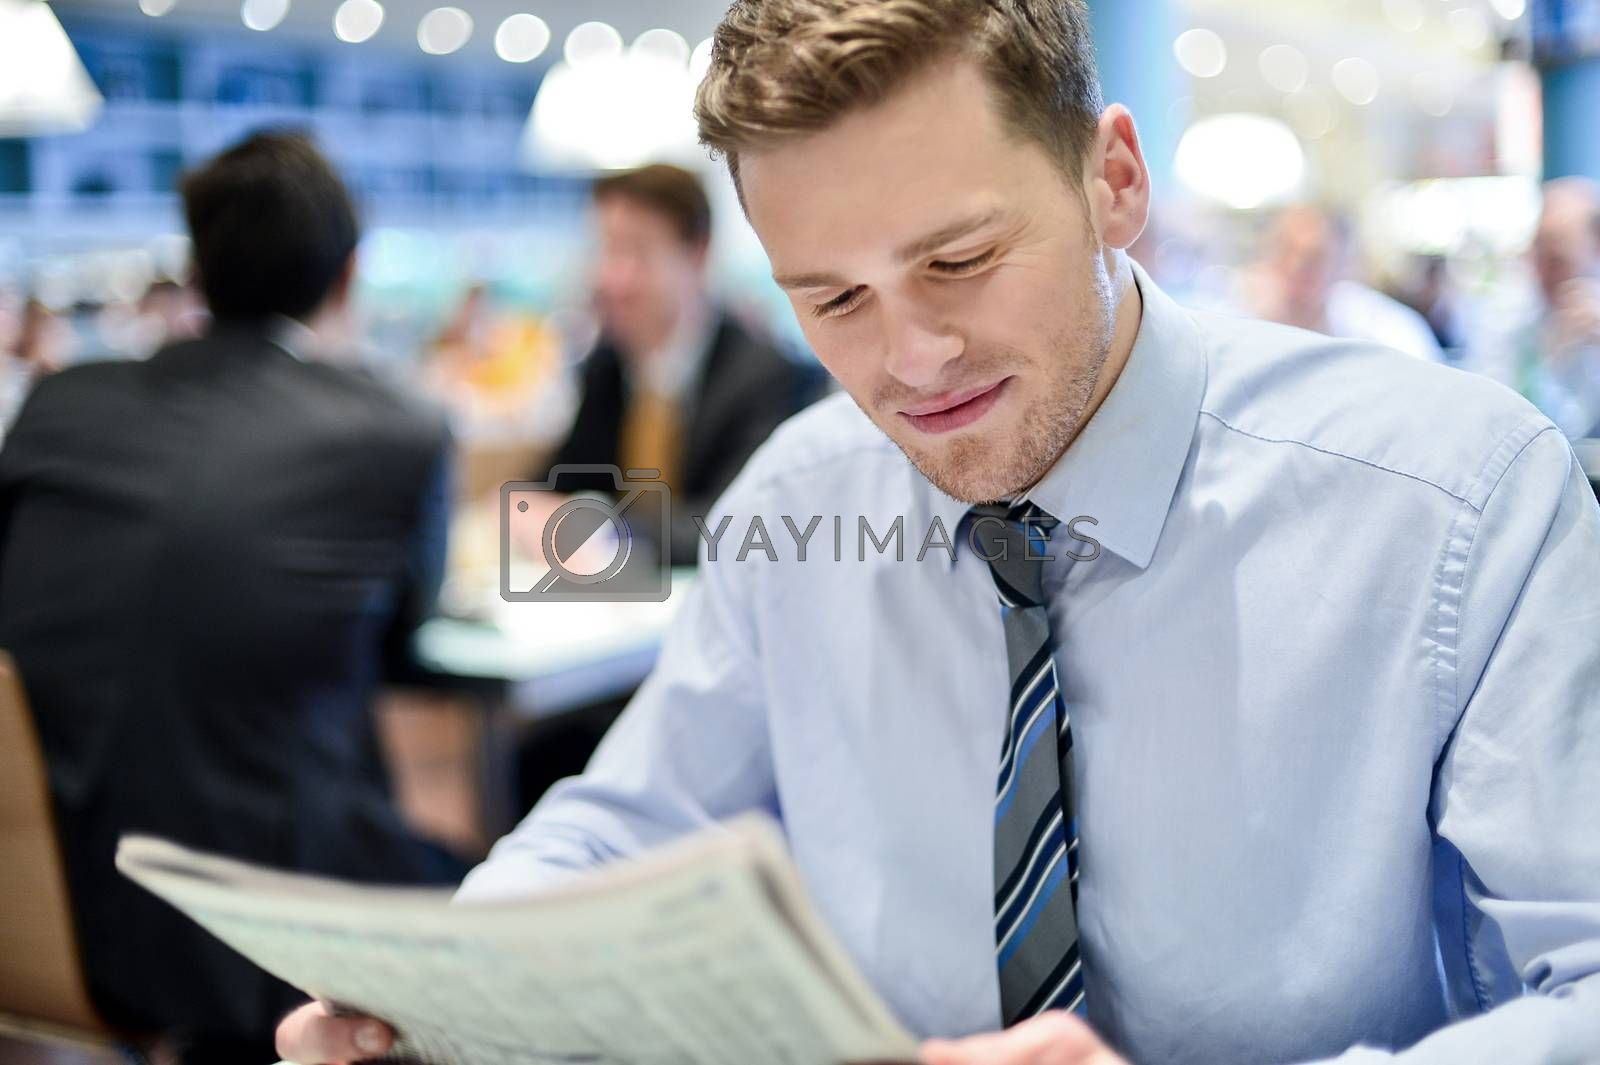 Royalty free image of Young businessman in a restaurant by stockyimages